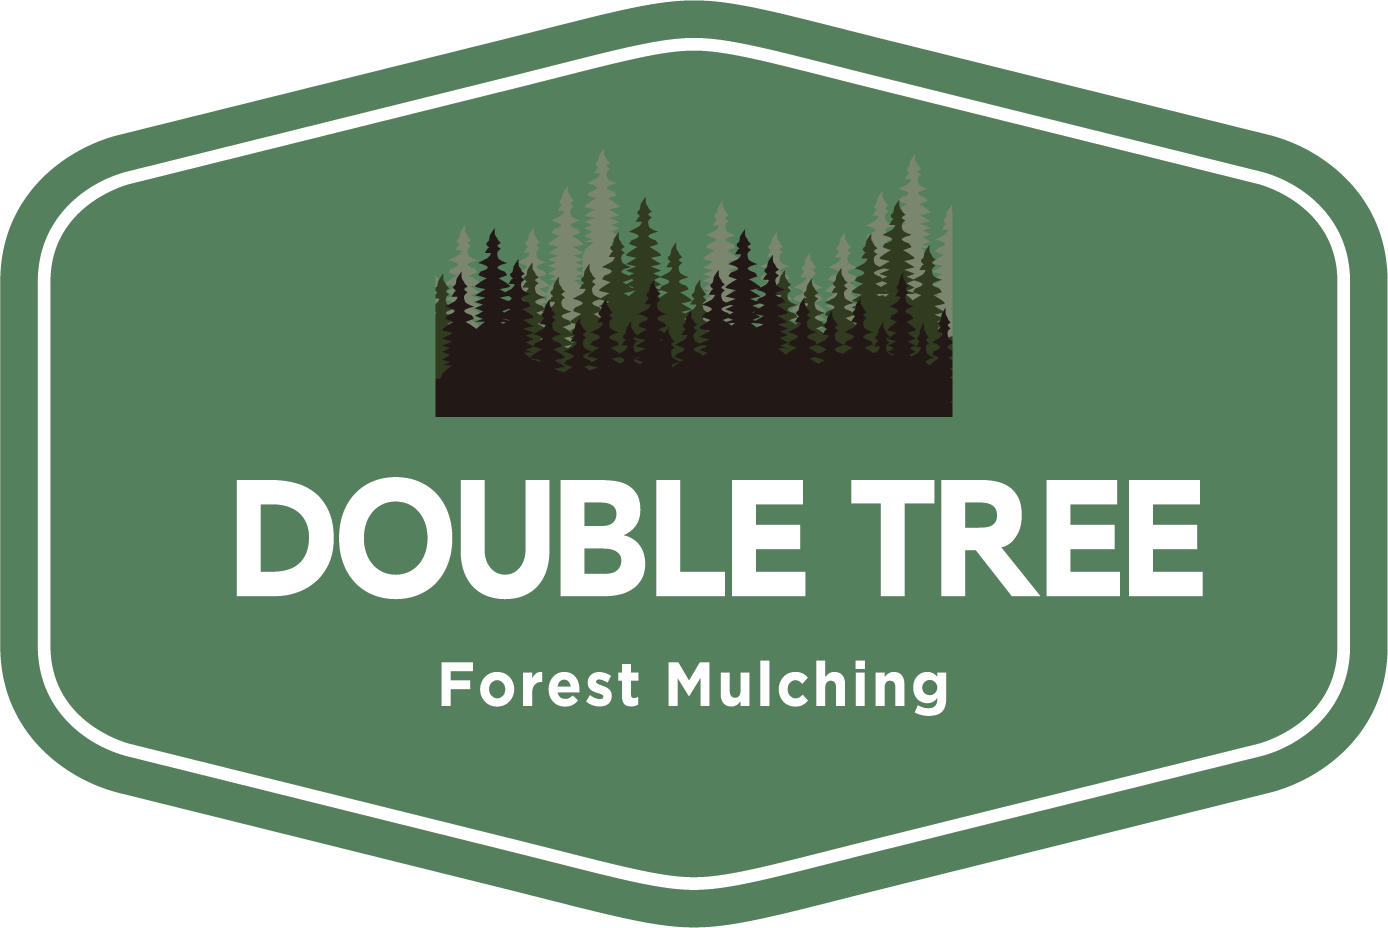 Double Tree Forest Mulching Logo